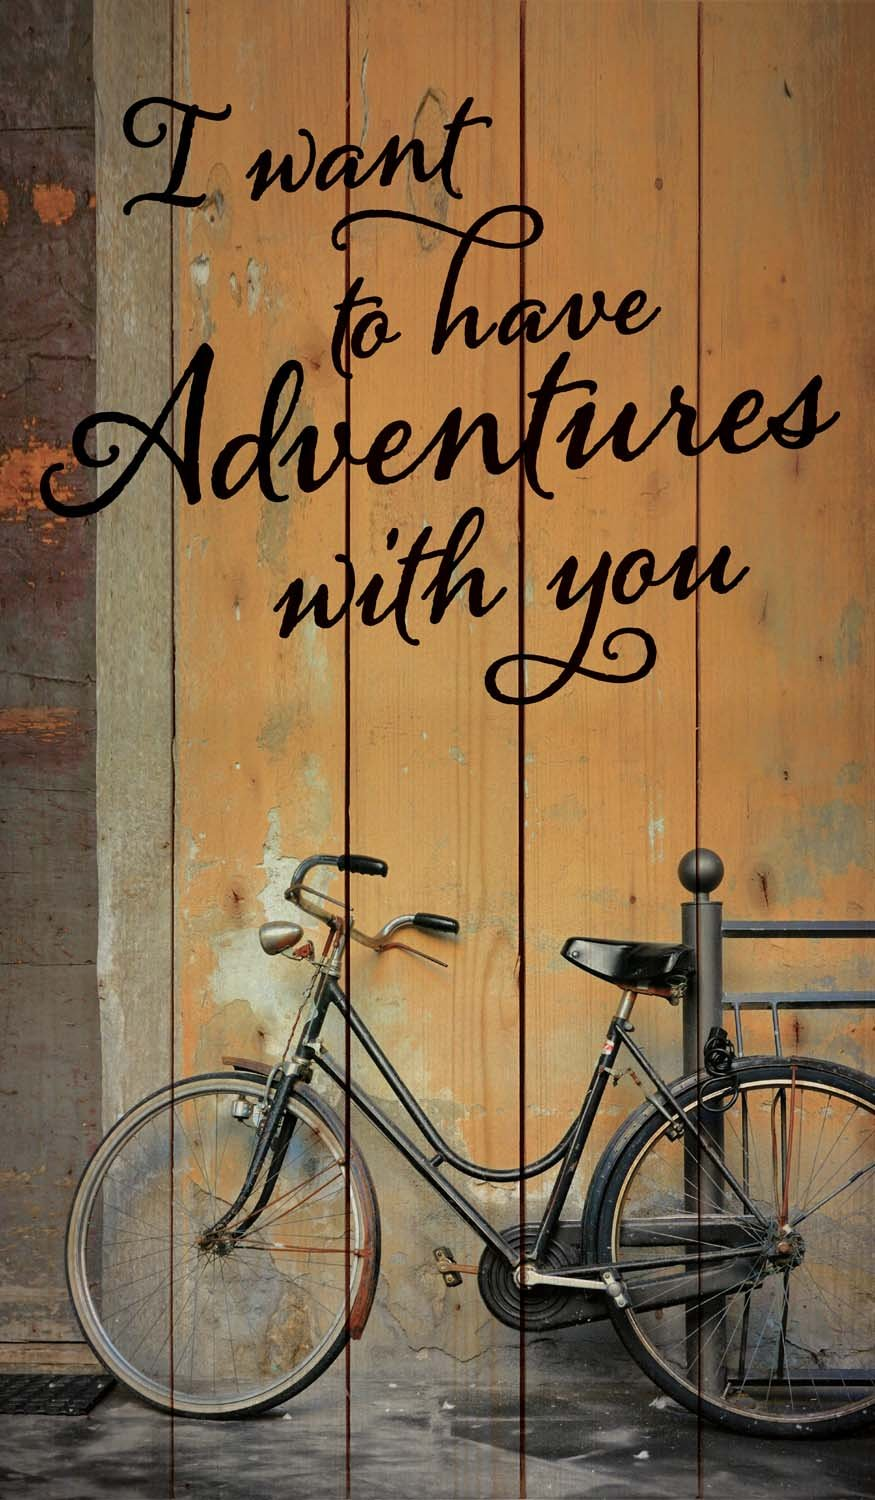 Graham Dunn I Want to Have Adventures with You Vintage Bike Design 24 x 14 Wood Pallet Wall Art Sign Plaque P